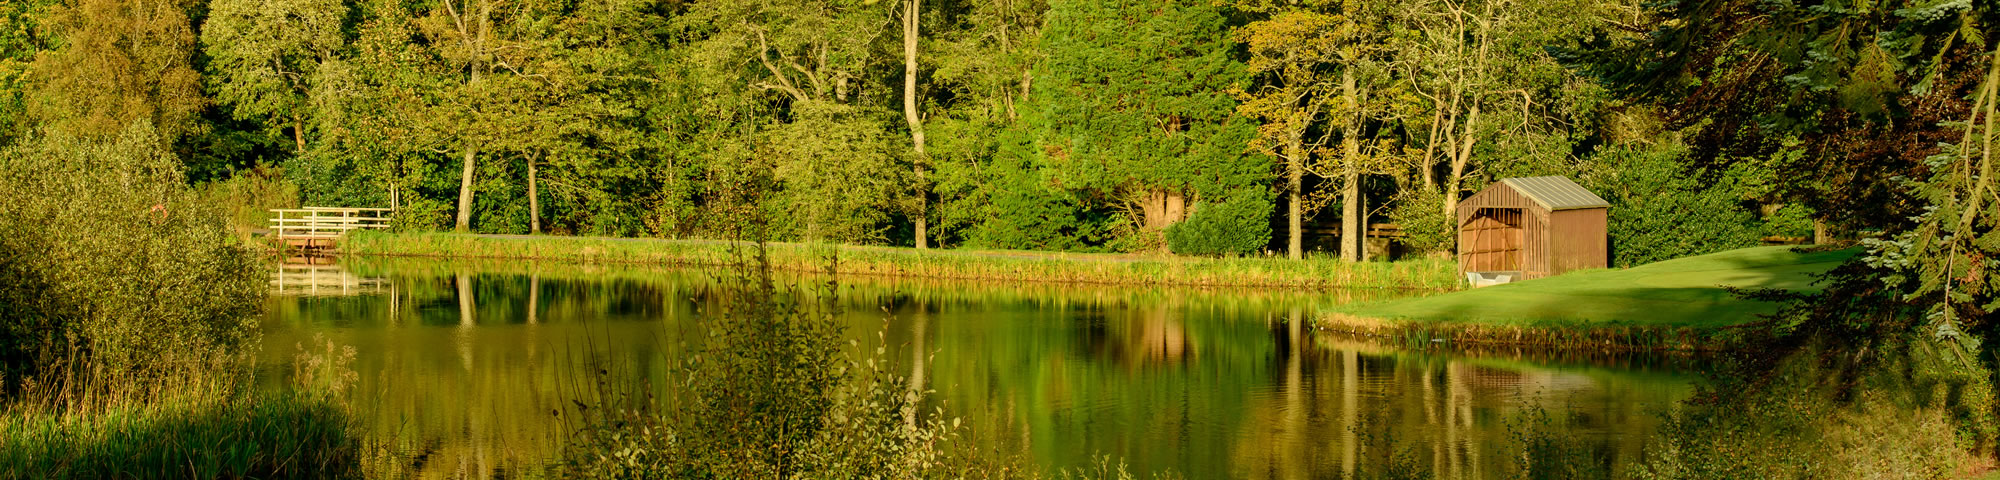 A trout fishing loch within the grounds of Gleneagles Hotel